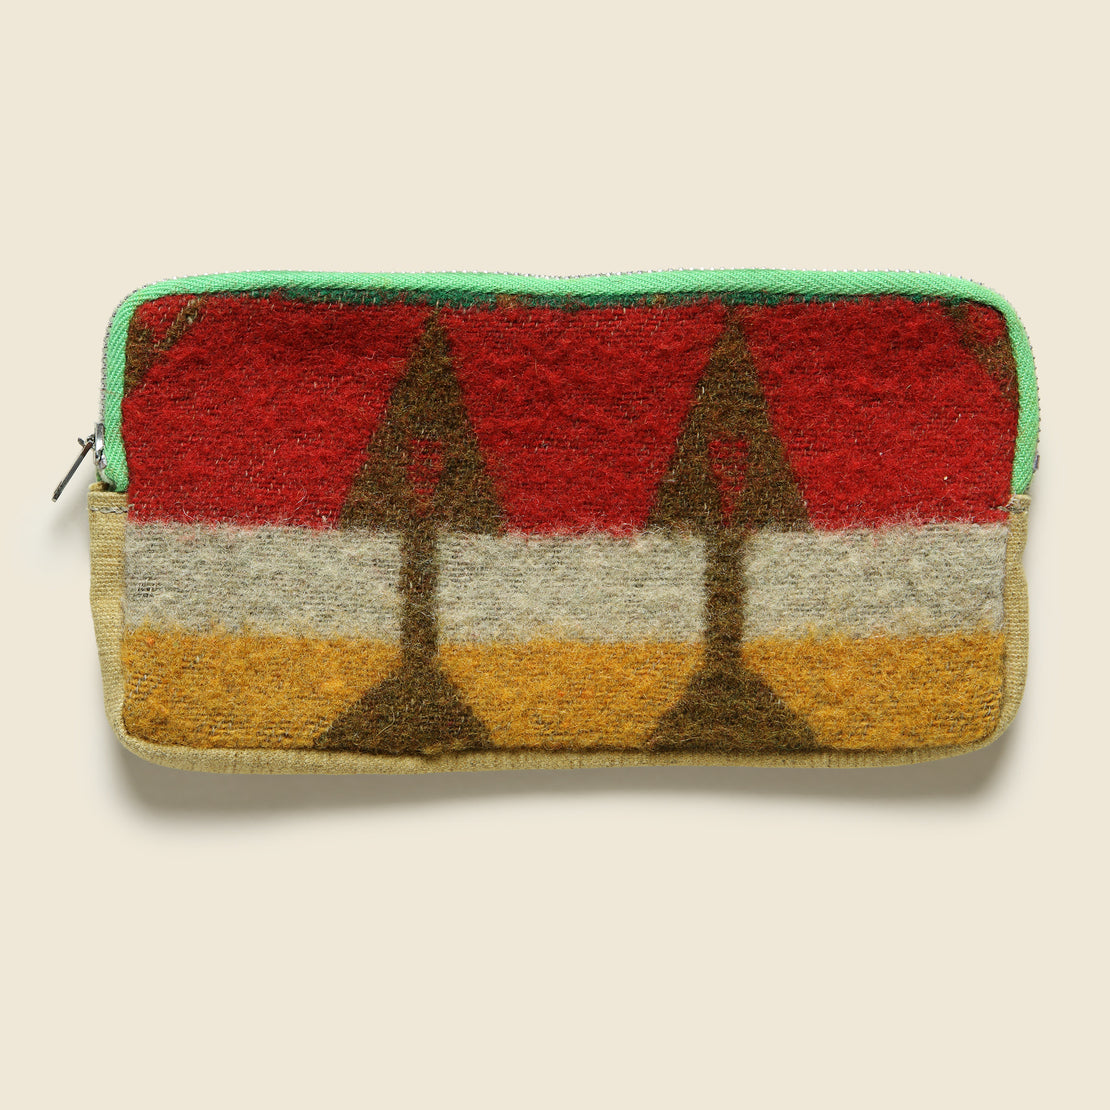 Vintage Zipper Pouch - Orange/Red/Green